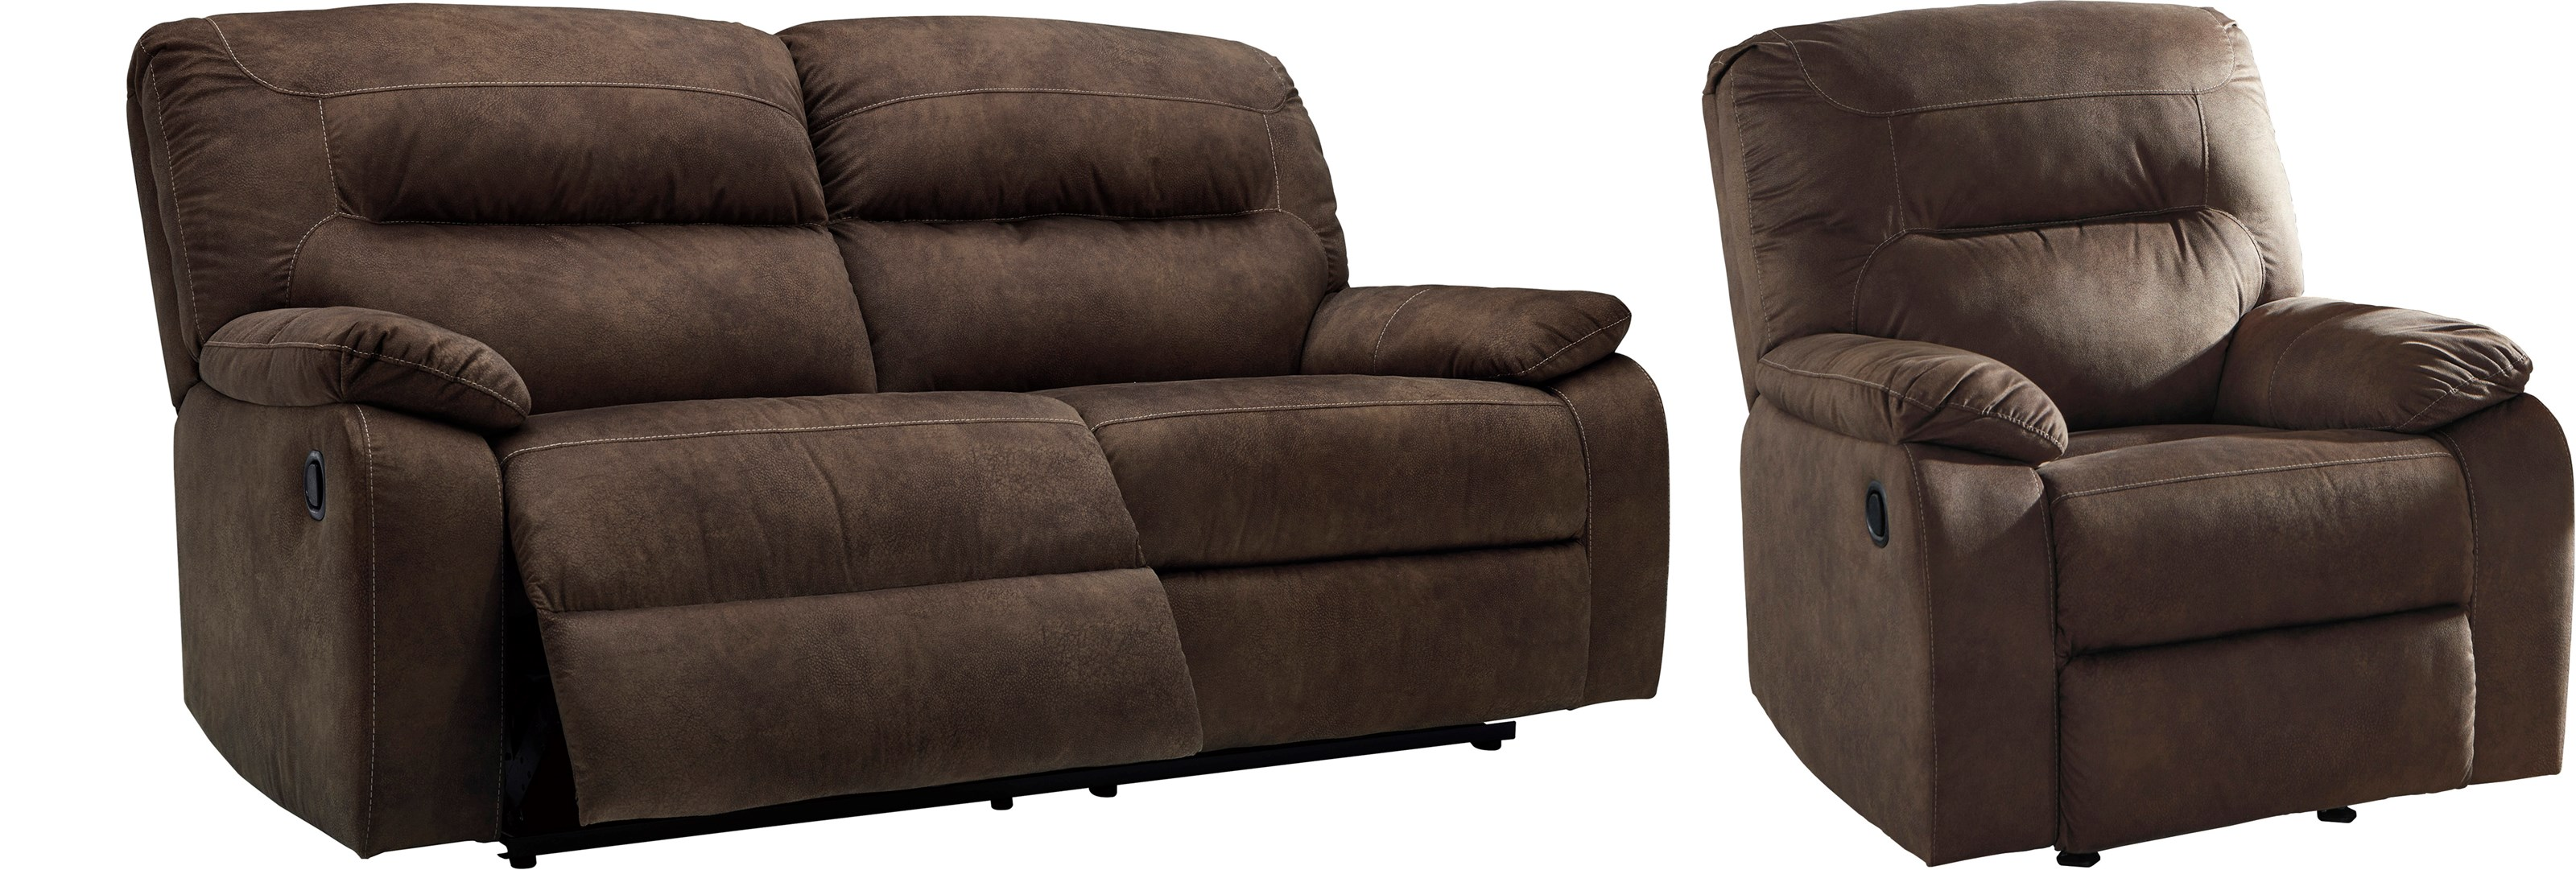 Bolzano Reclining Living Room Group by Signature Design by Ashley at Standard Furniture